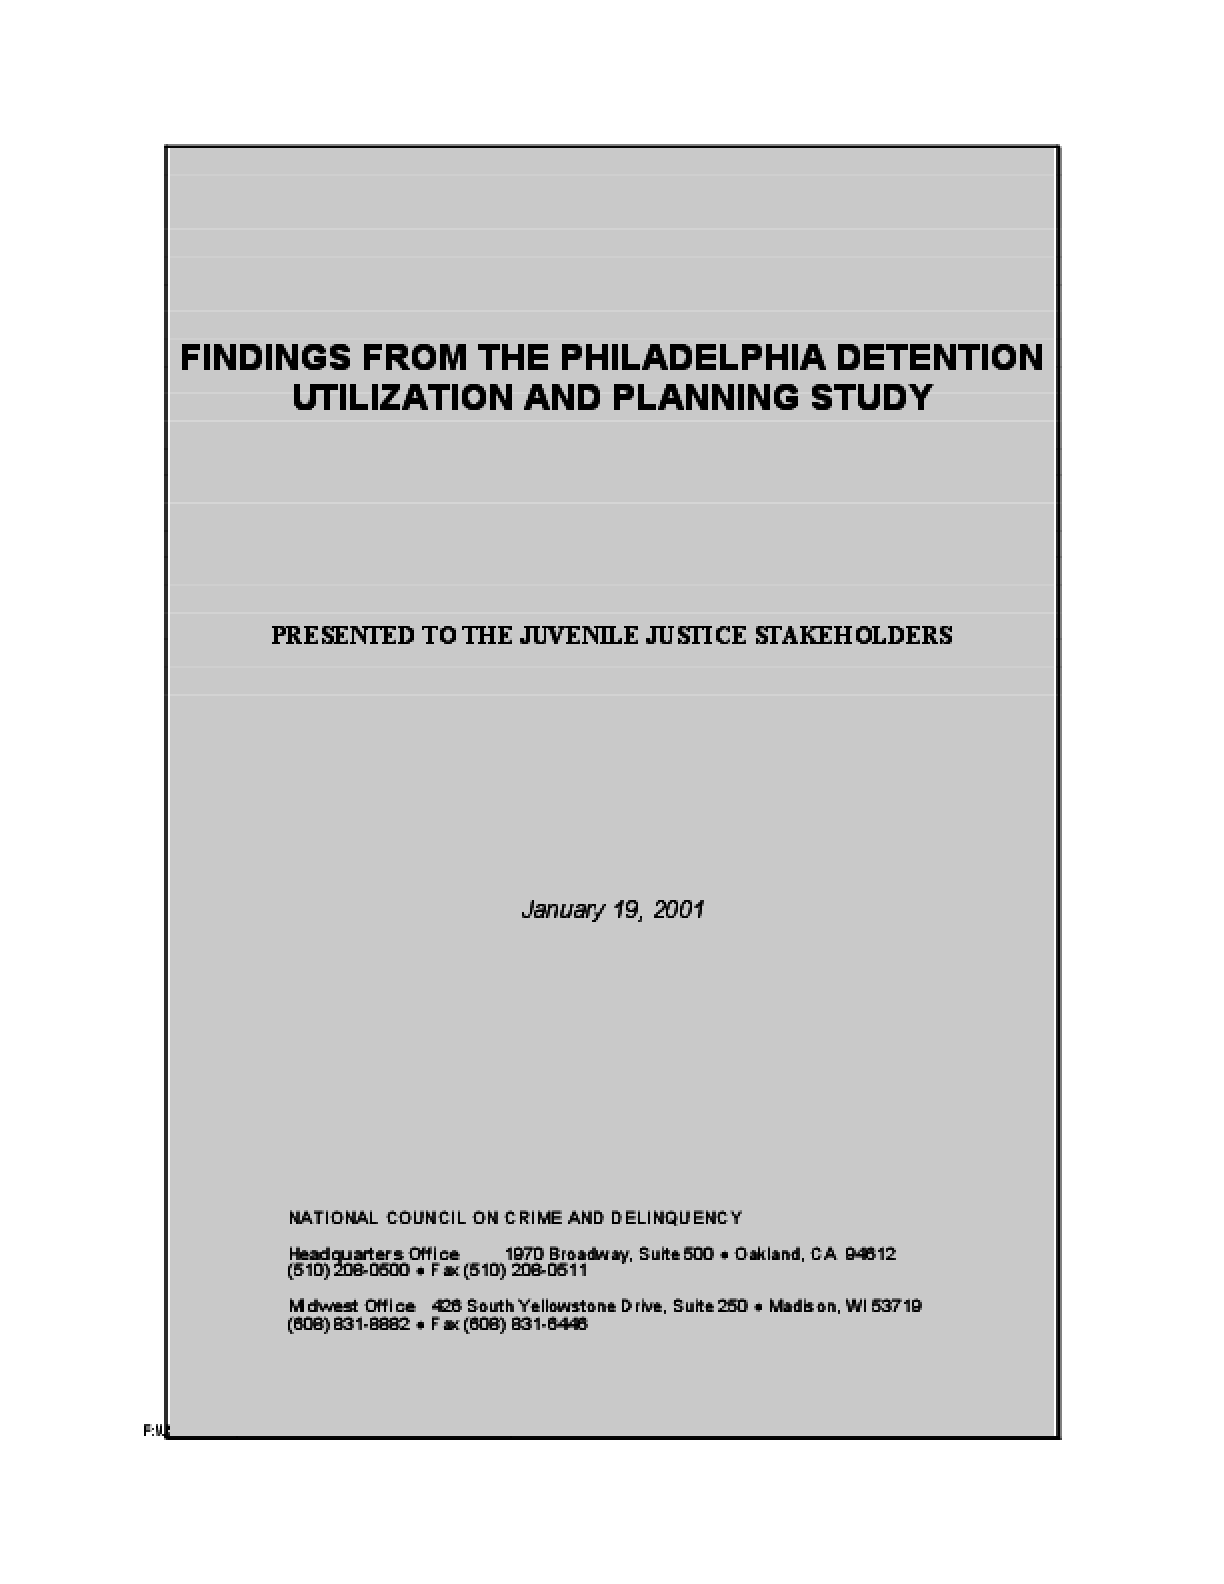 Findings from the Philadelphia Detention Utilization and Planning Study